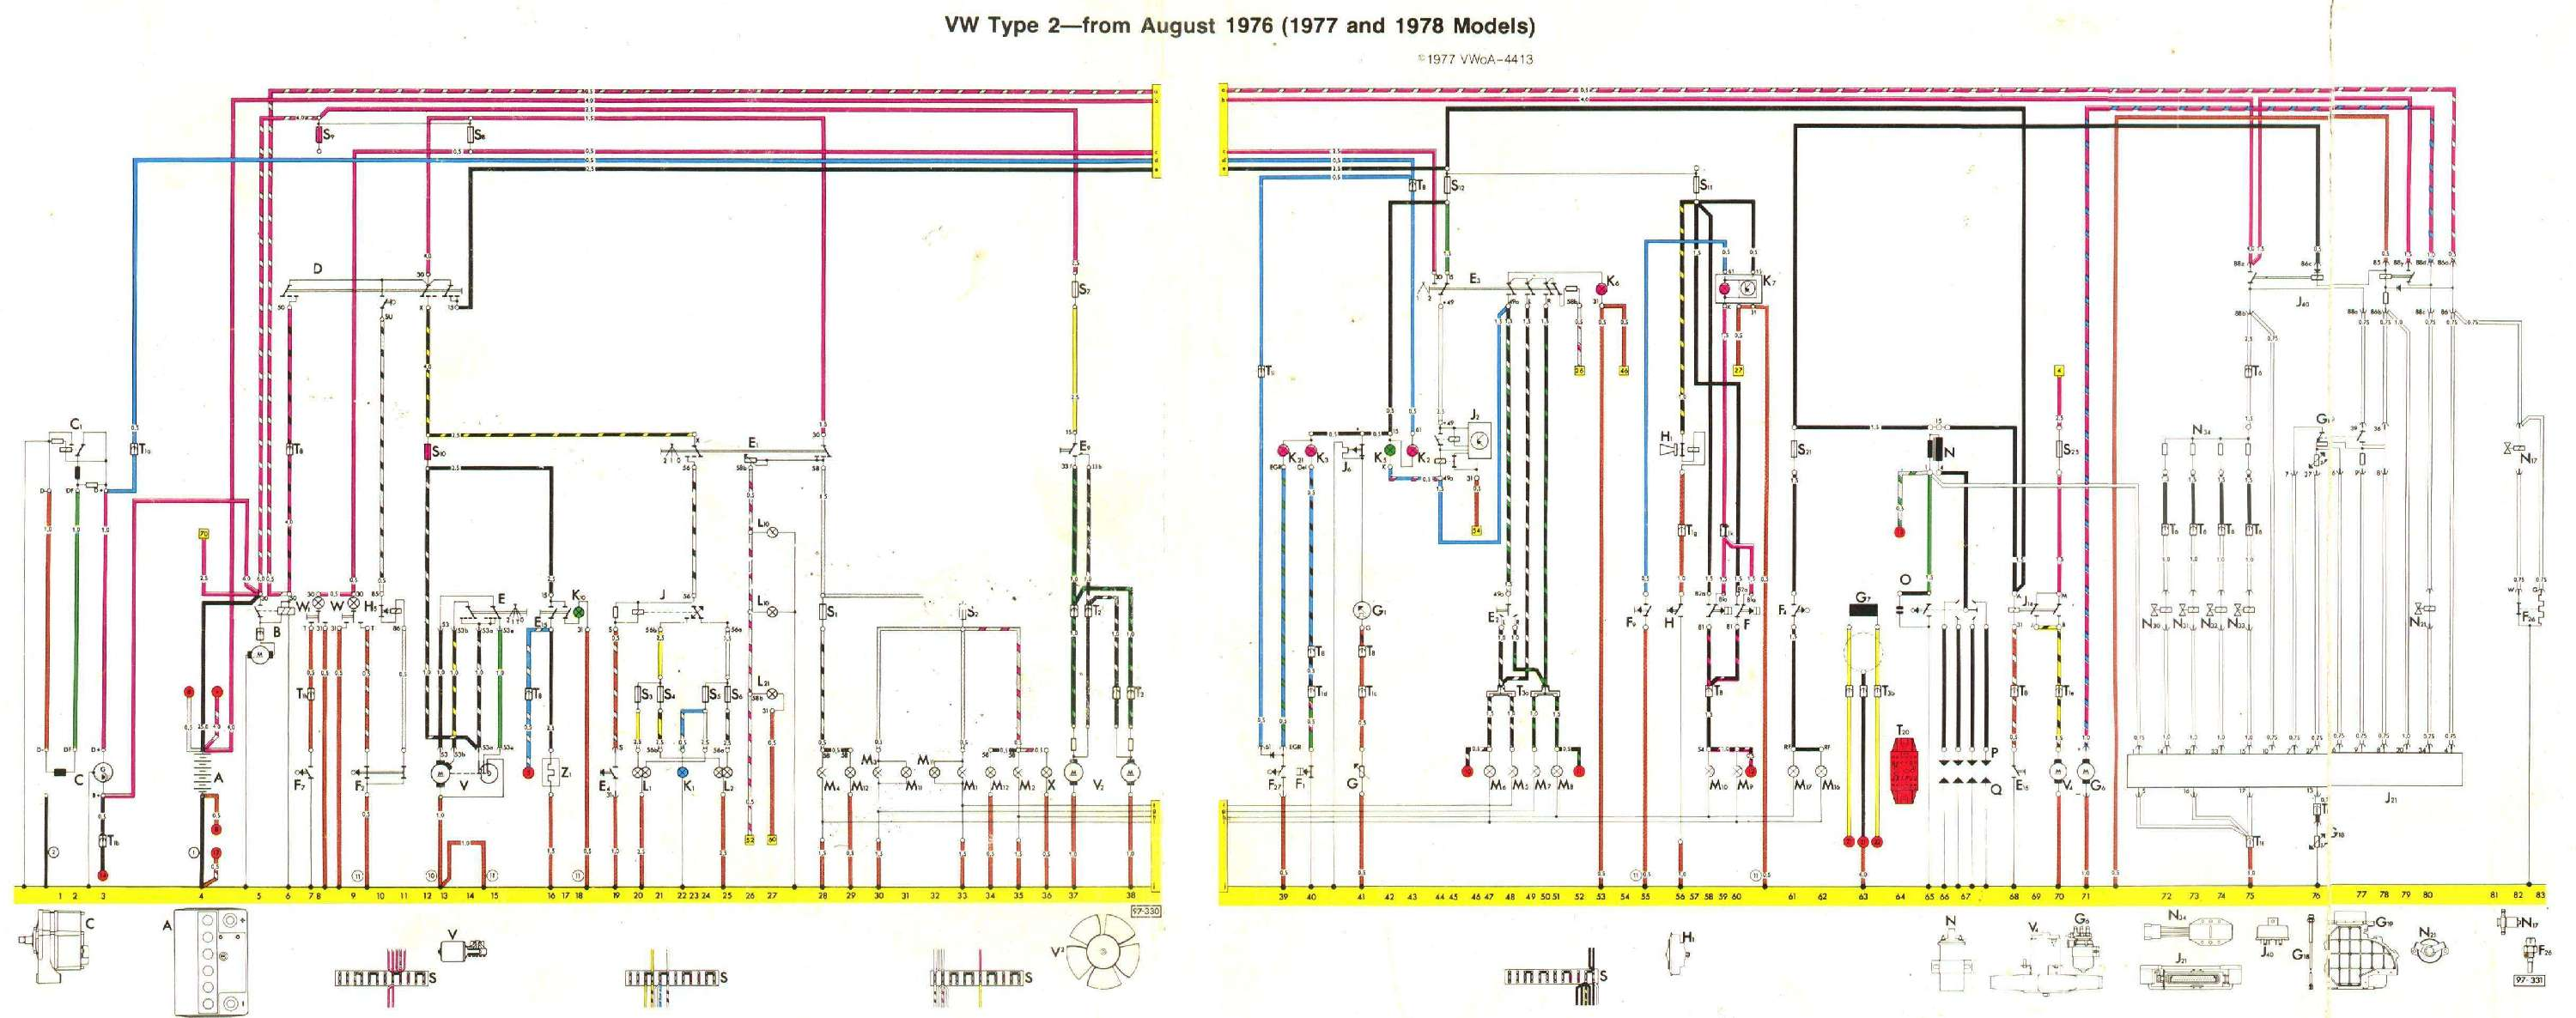 vw 1600 engine diagram desert ecosystem wiring diagrams